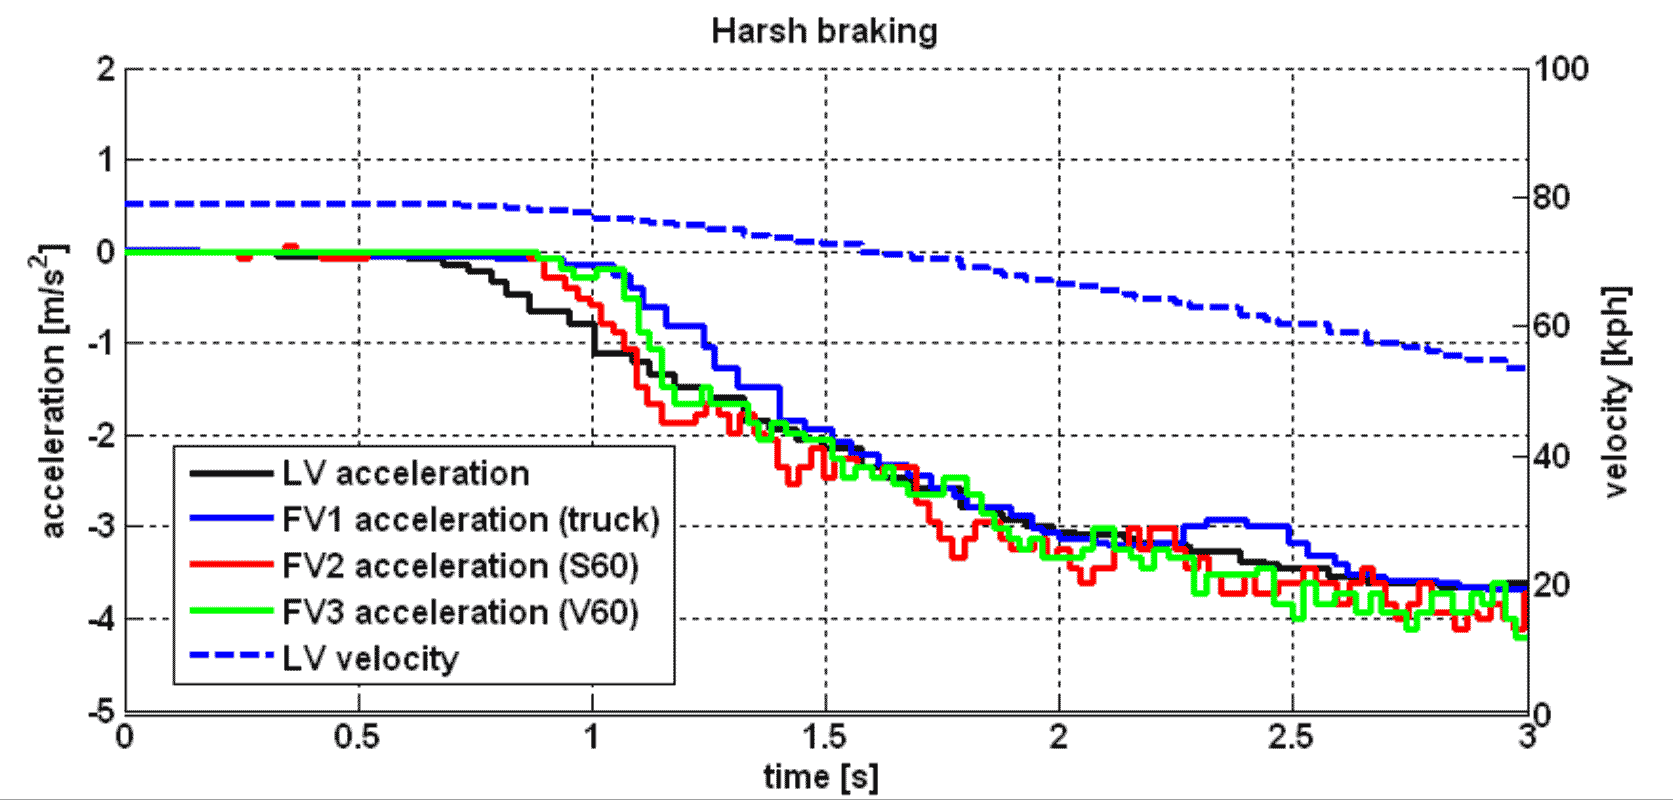 The Sartre project's test data show the deceleration of three following vehicles matching that of lead vehicle. The cars and trucks communicate using a variation of the 802.11p vehicle-to-vehicle and vehicle-to-infrastructure networking technology.